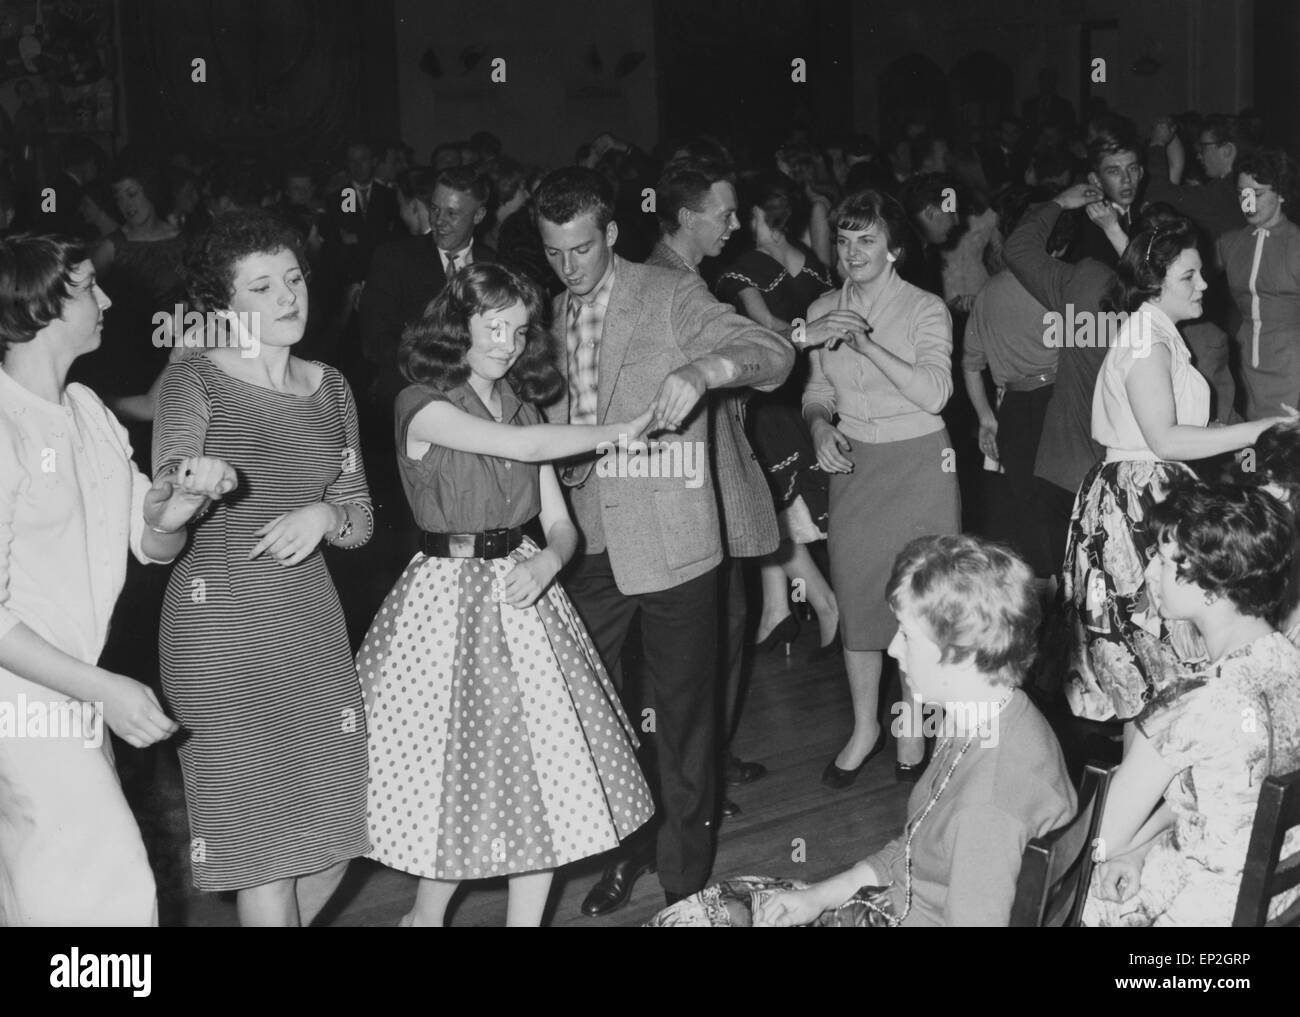 The Mardi Gras opened its doors to merseyside teenagers on 28 September 1957. The club's walls were decorated - Stock Image